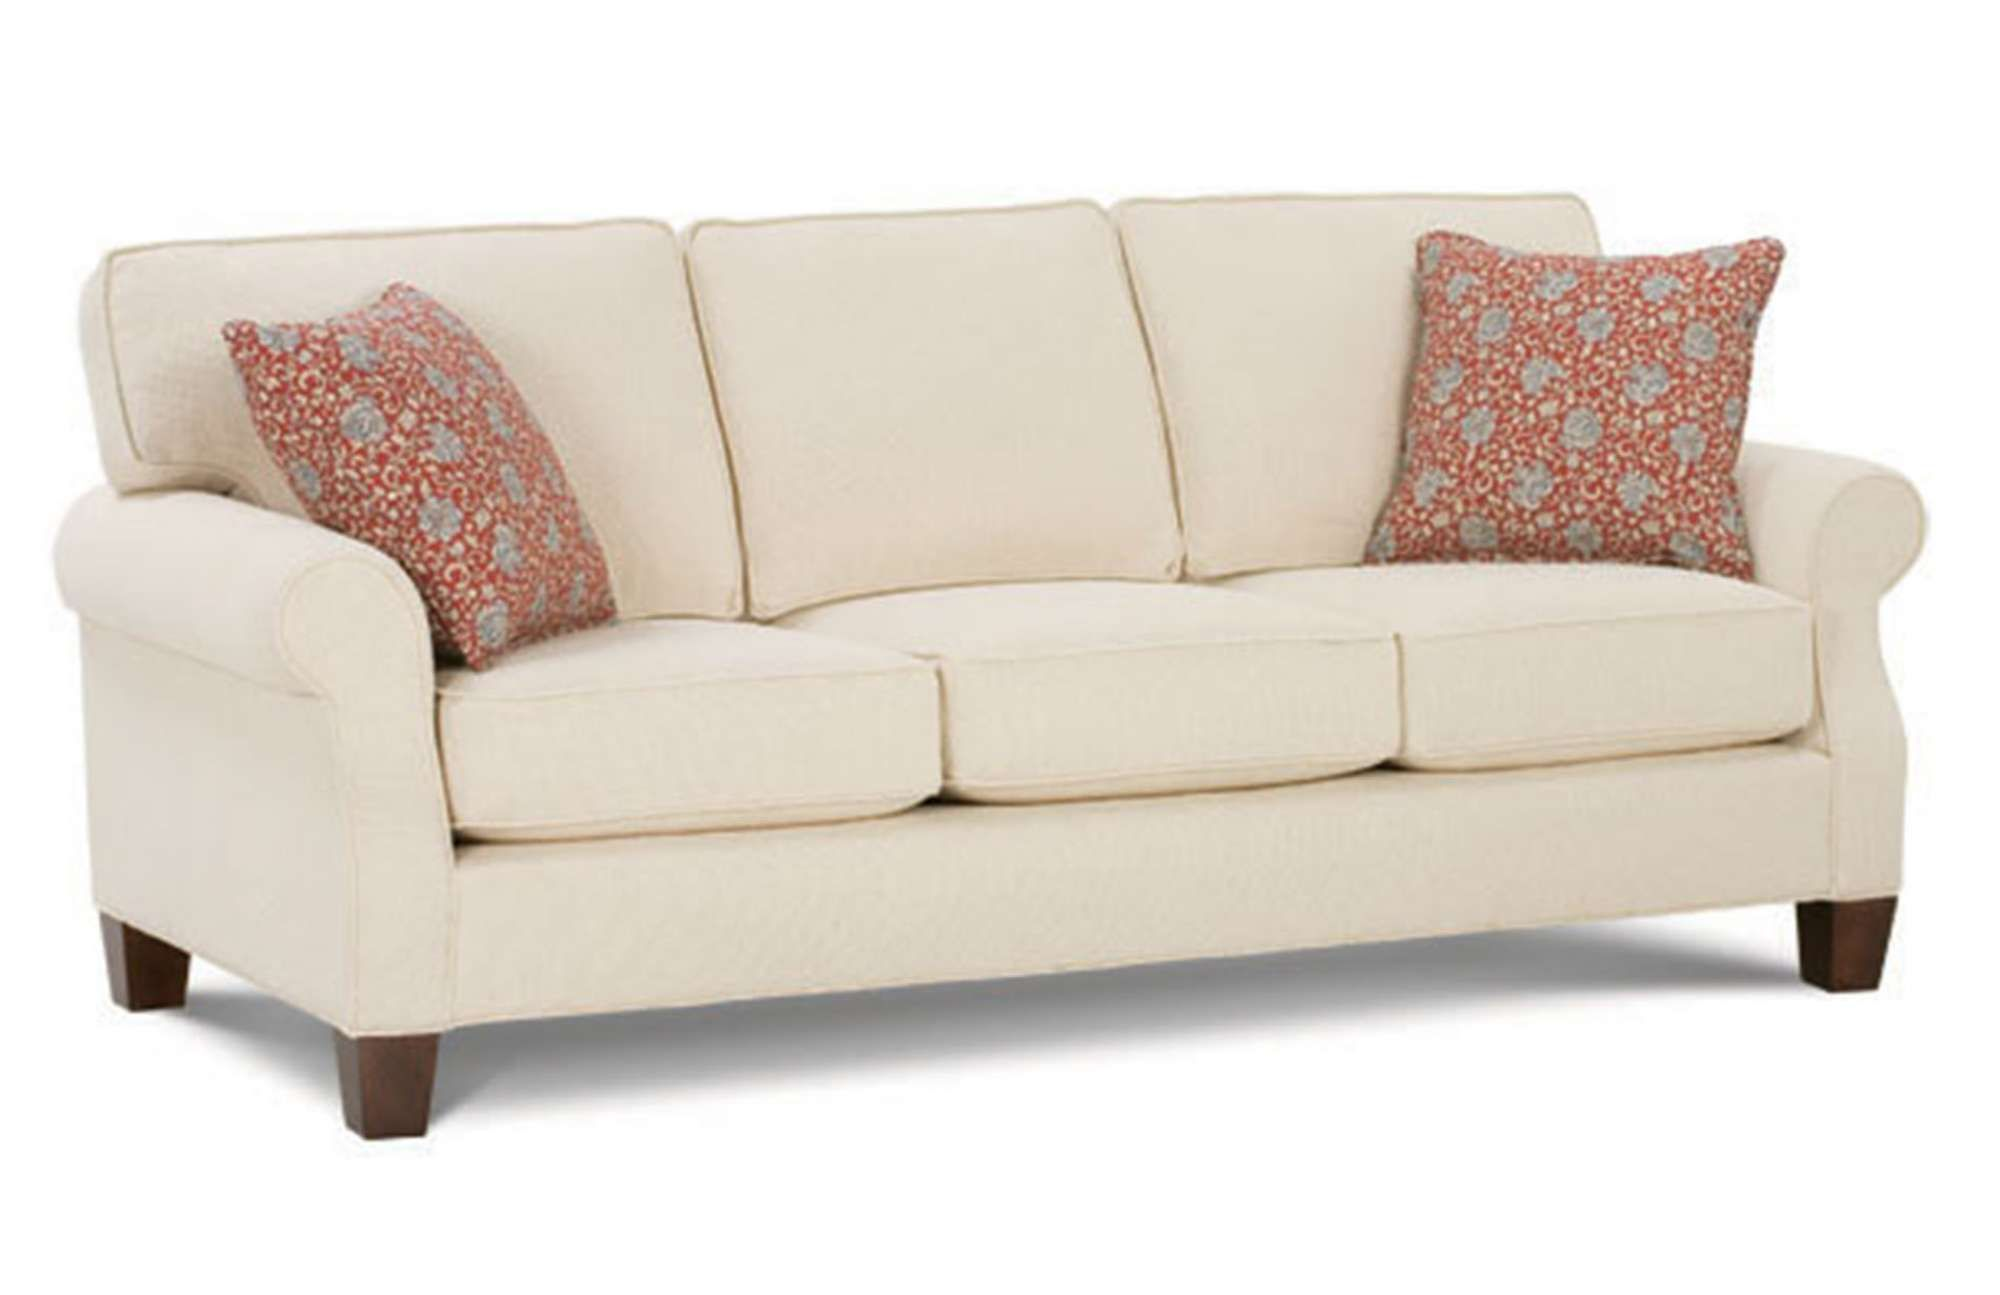 Love Your Sofa Macclesfield Dimensions Meters Kimball Rowe Furniture For The Home Pinterest